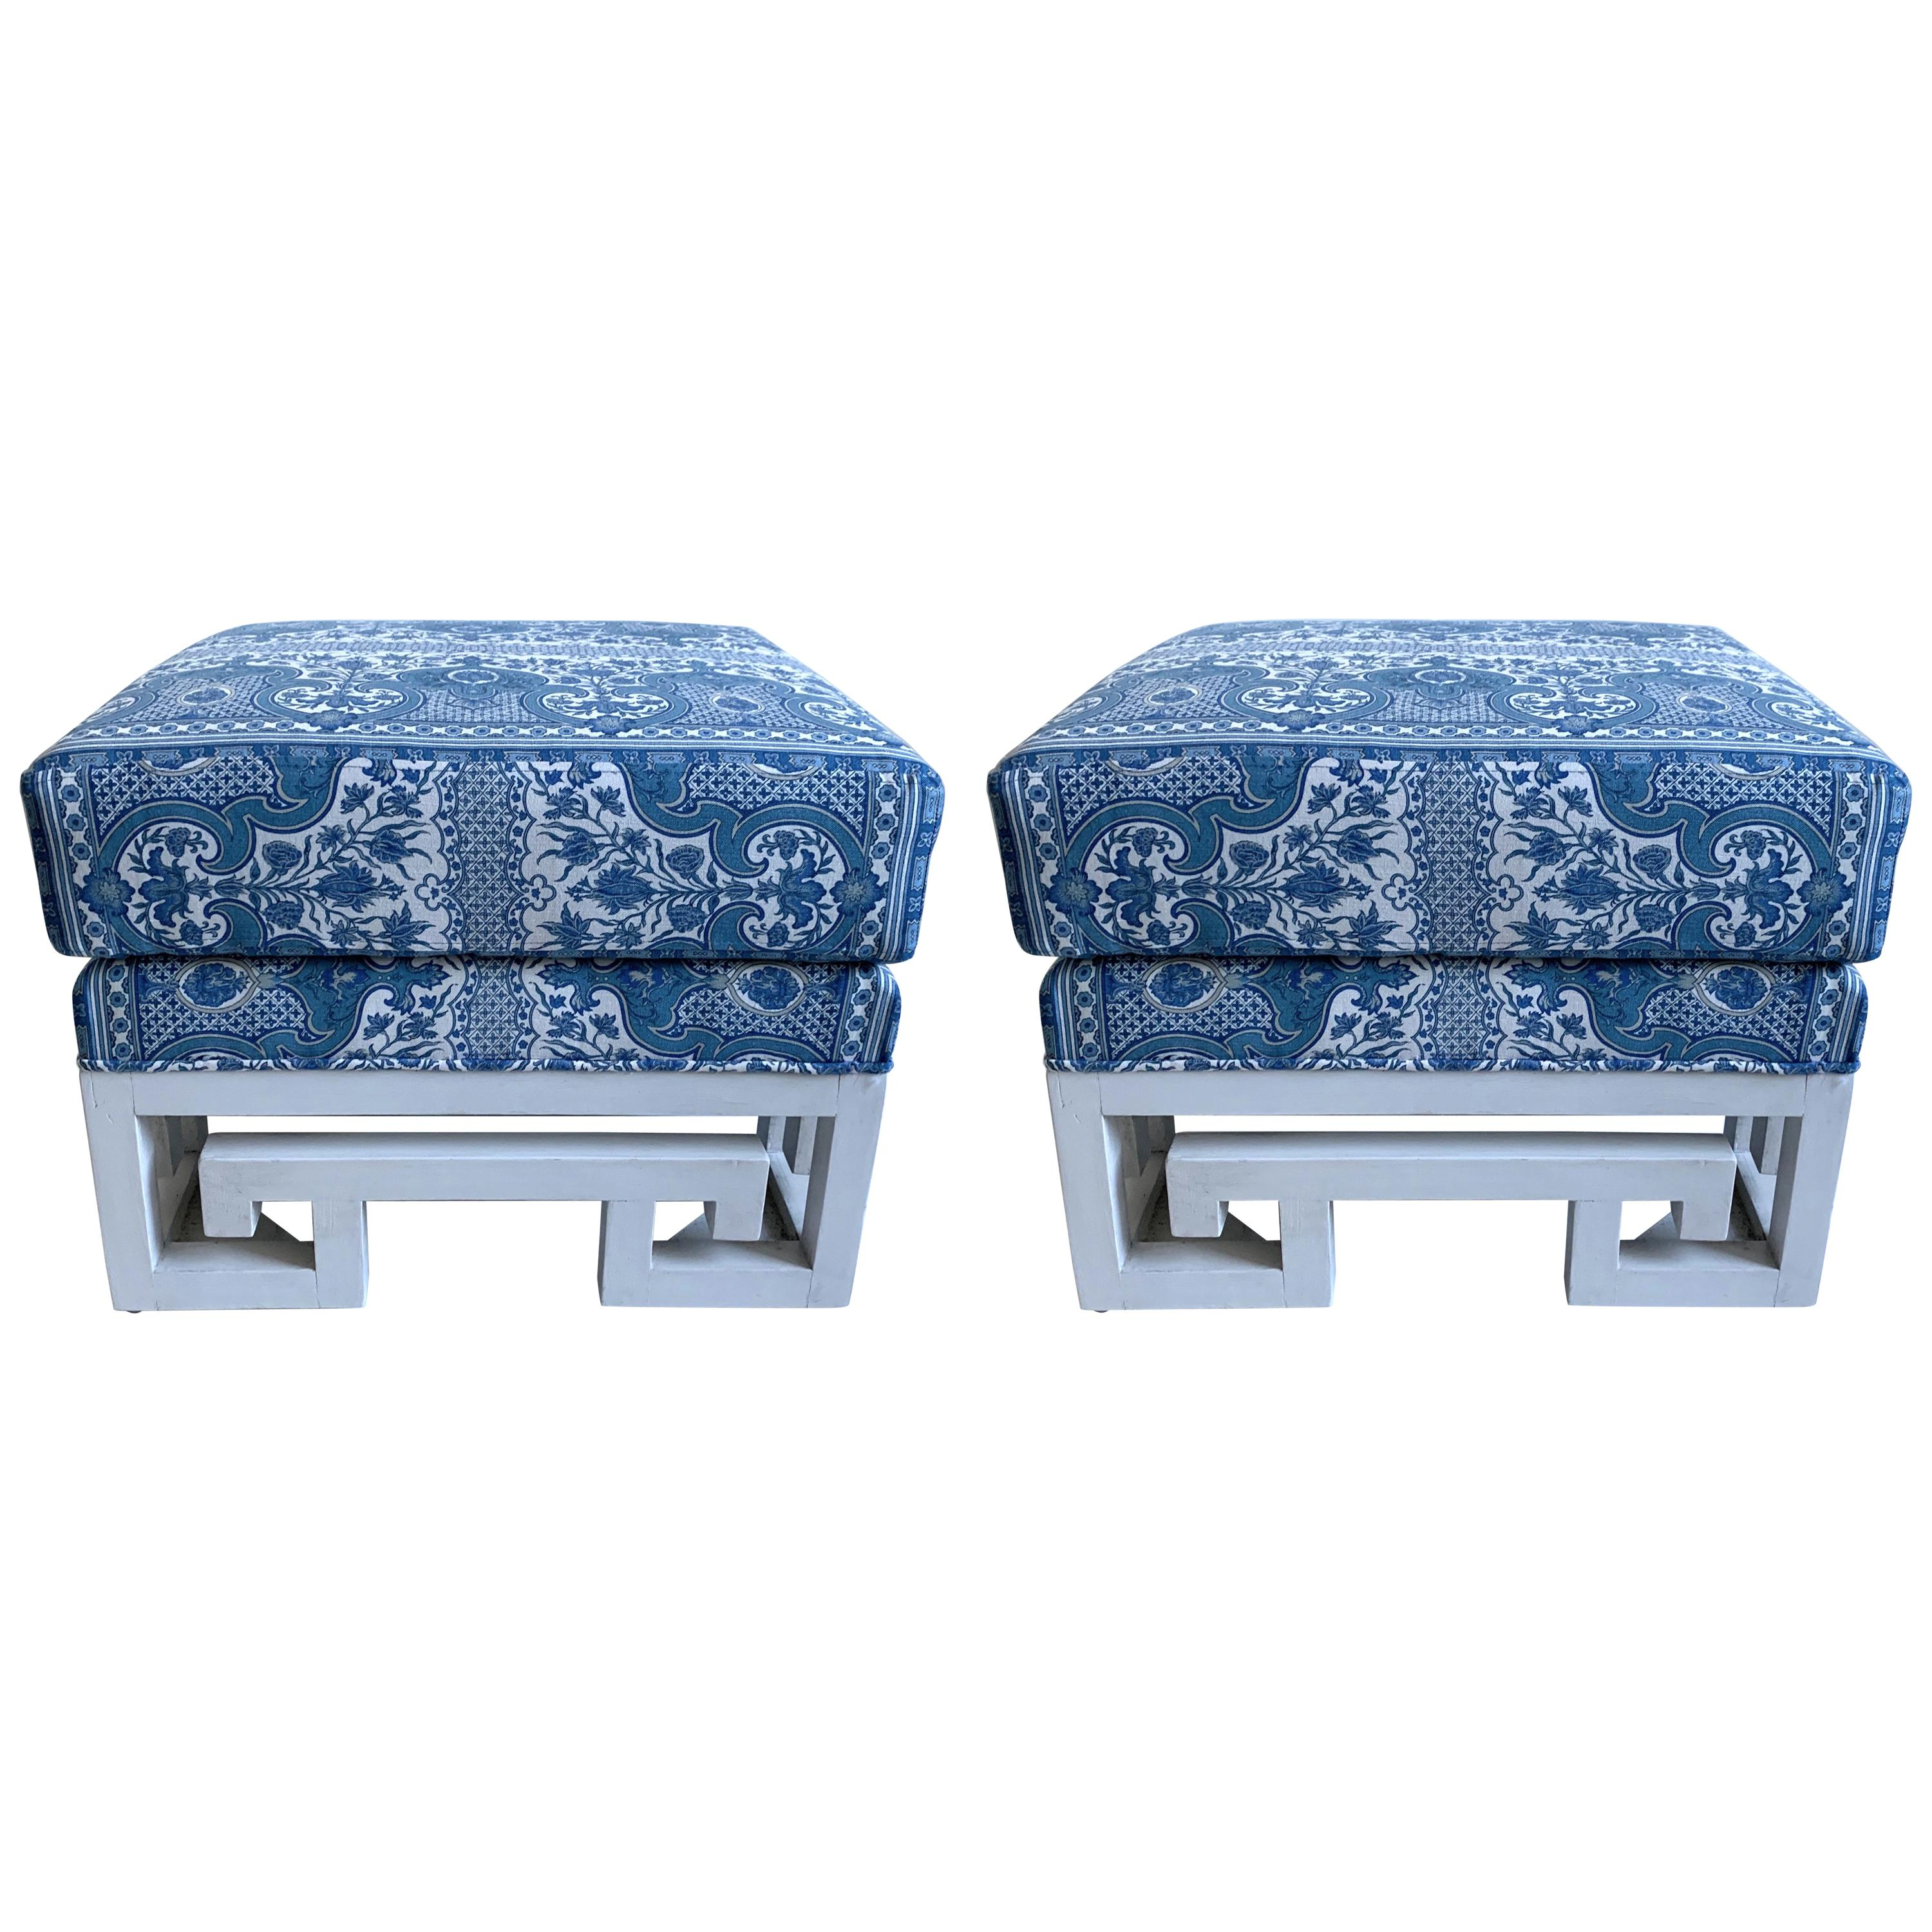 Pair of Greek Key White Painted Ottomans or Stools